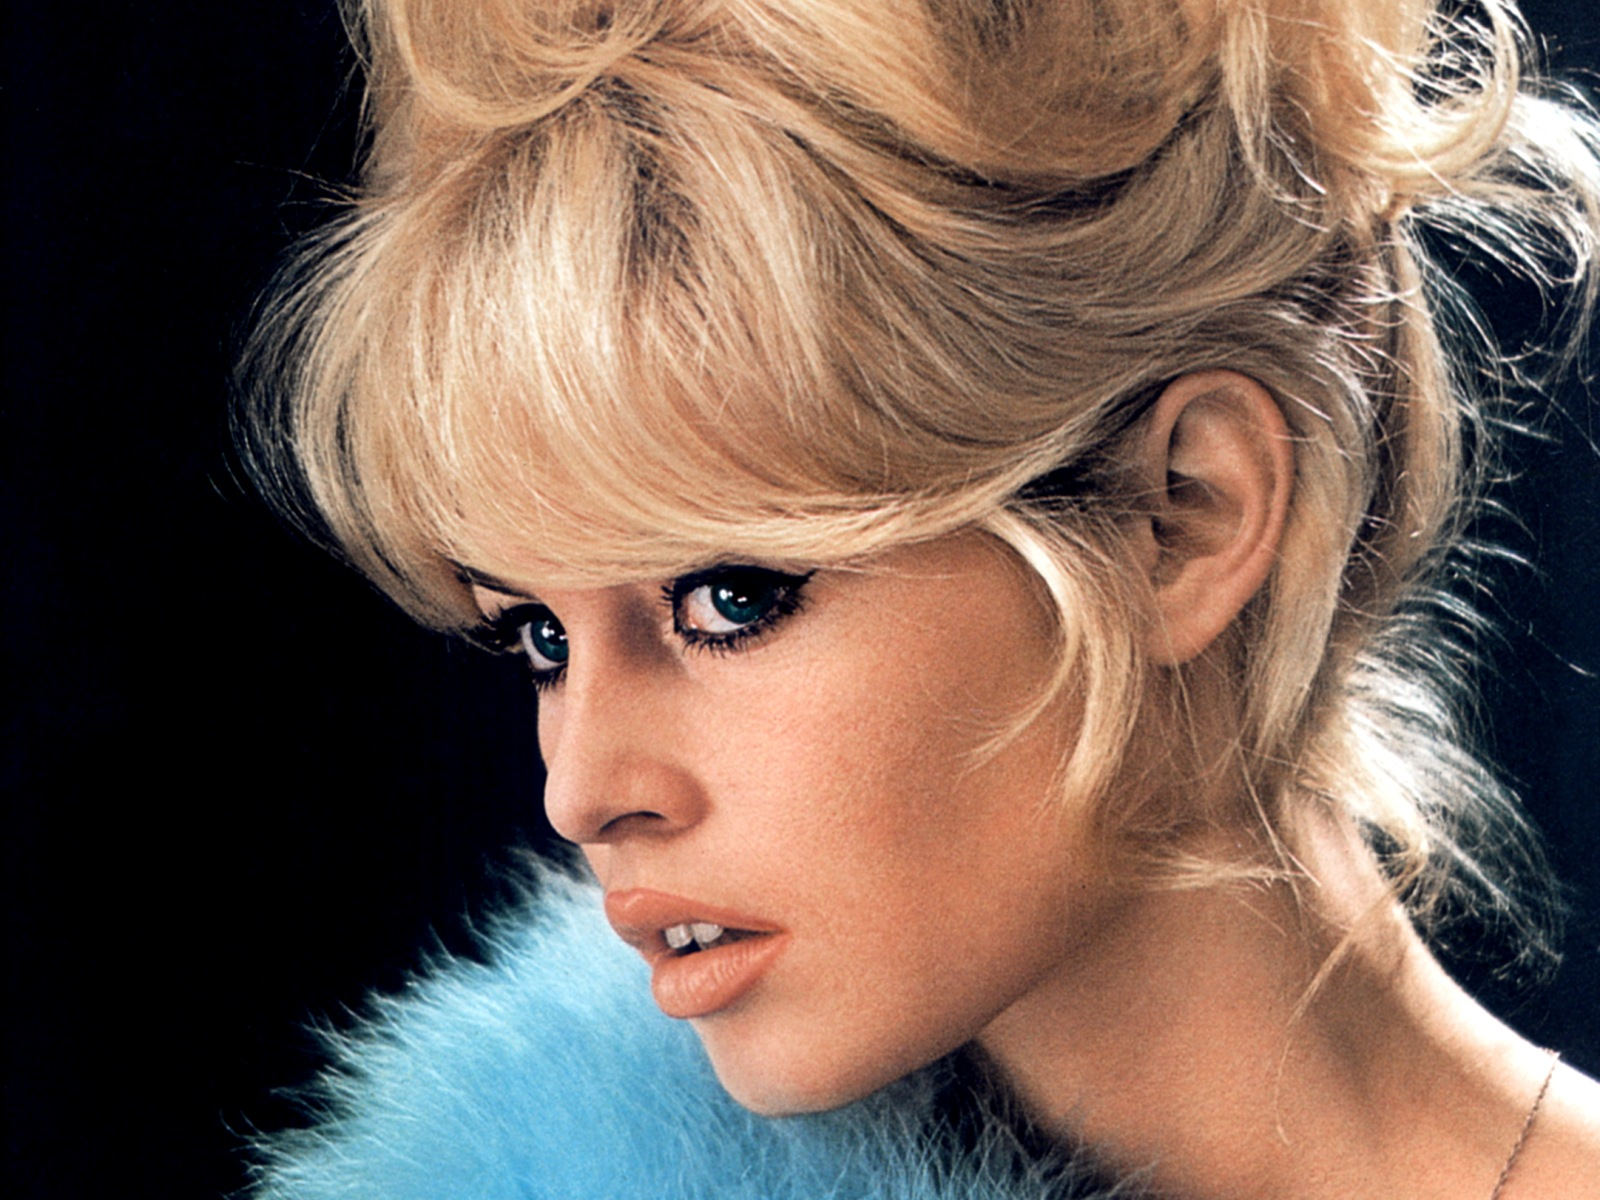 Brigitte Bardot, formerly one of the most beautiful women in the world, is now